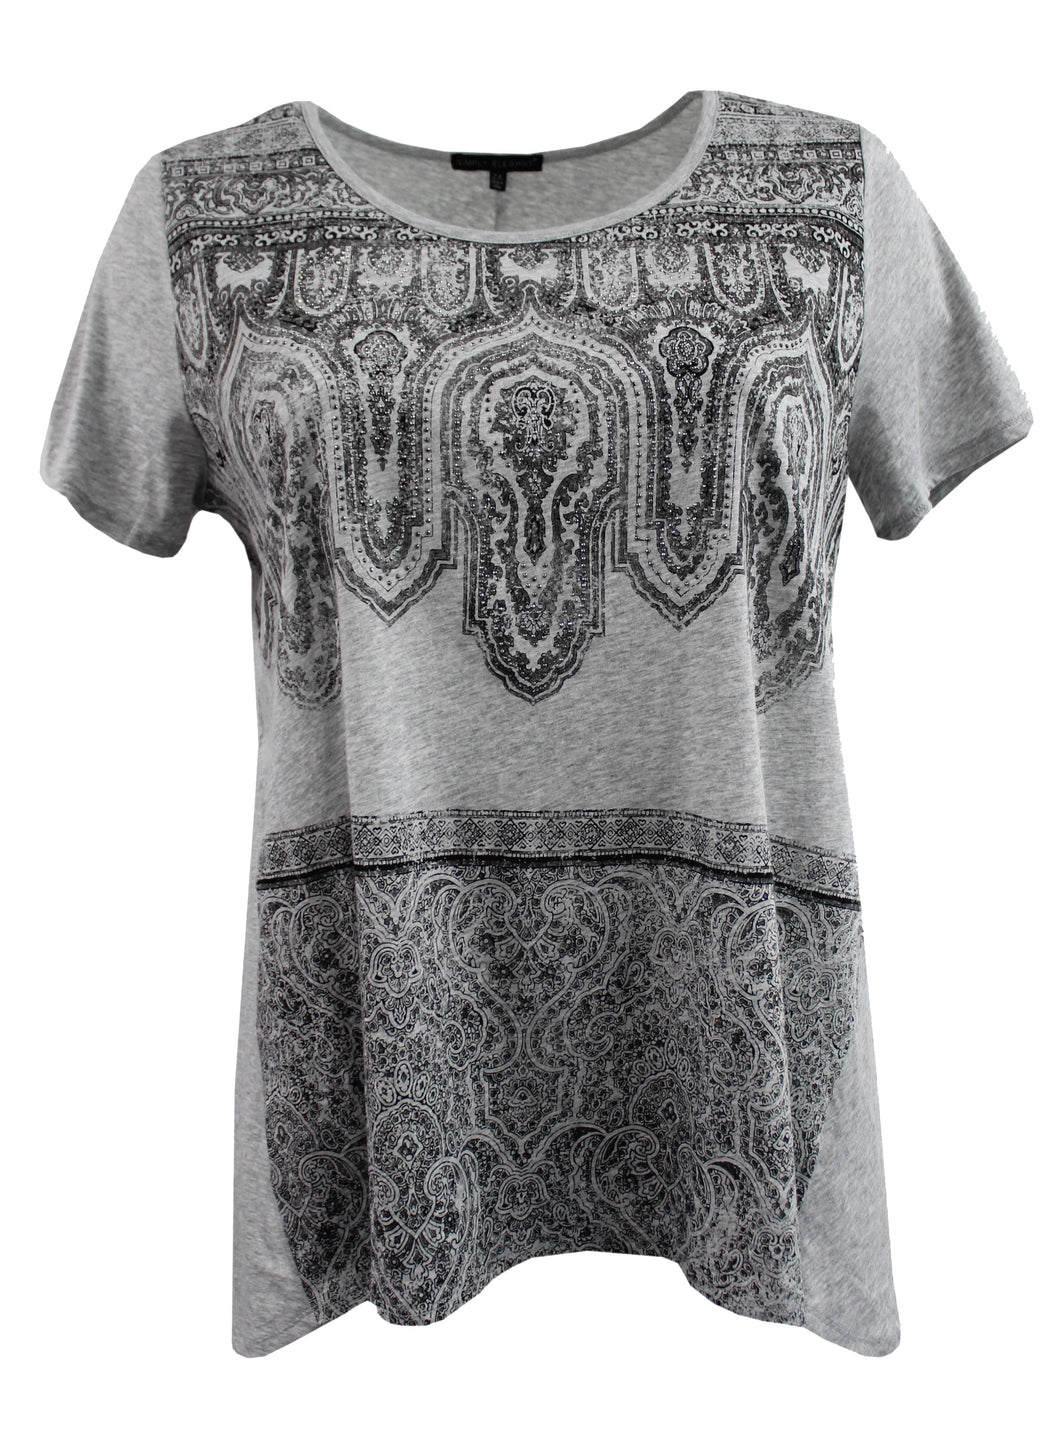 Black Lace Design Tee w/ Rhinestone Embellishment